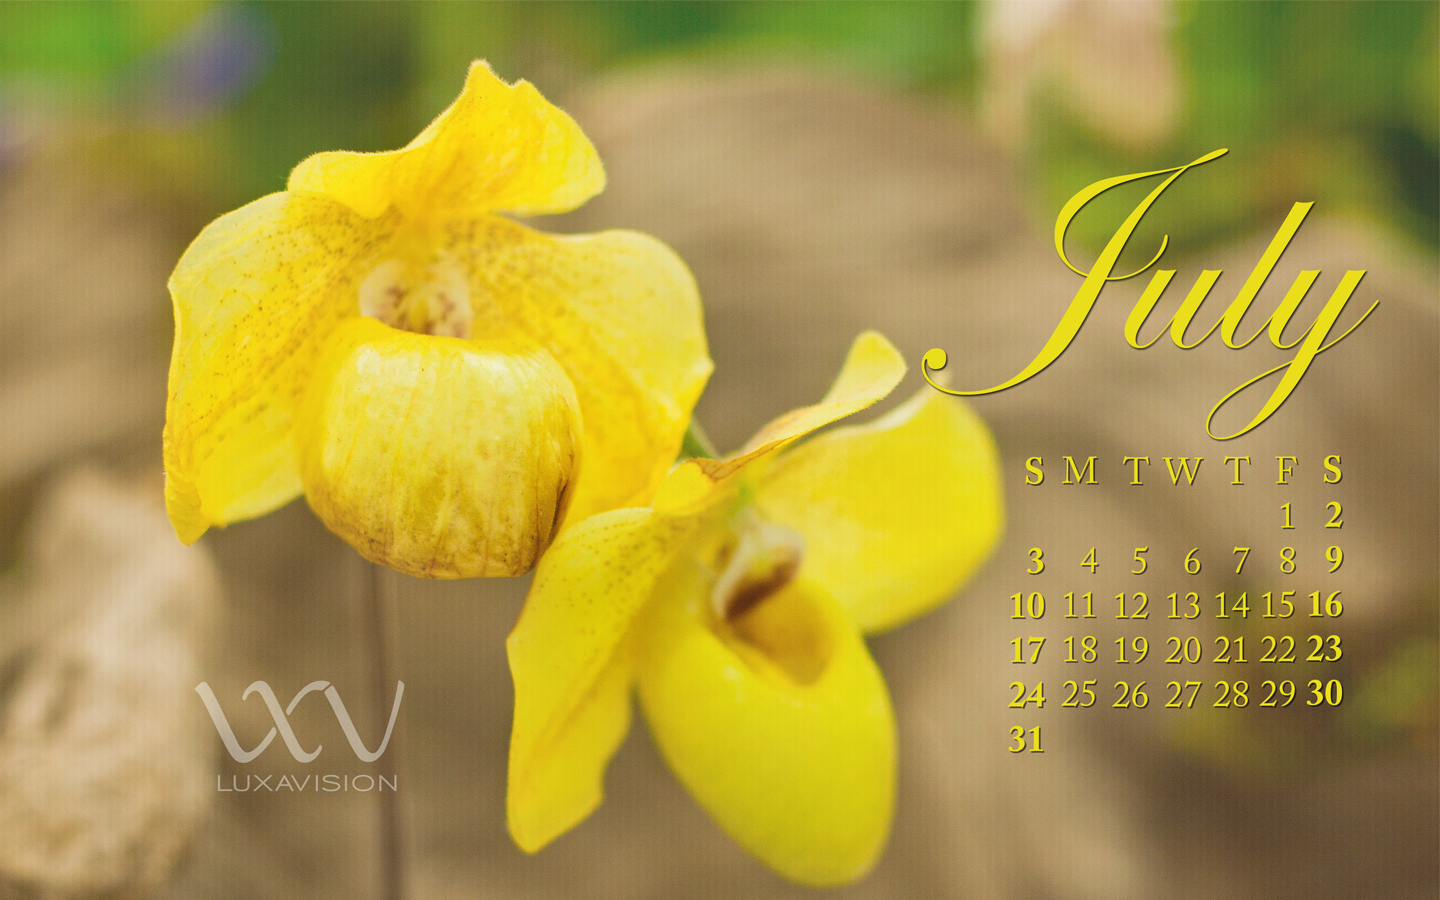 Desktop Calendar for July 2011 - Yellow Orchids - 1440x900